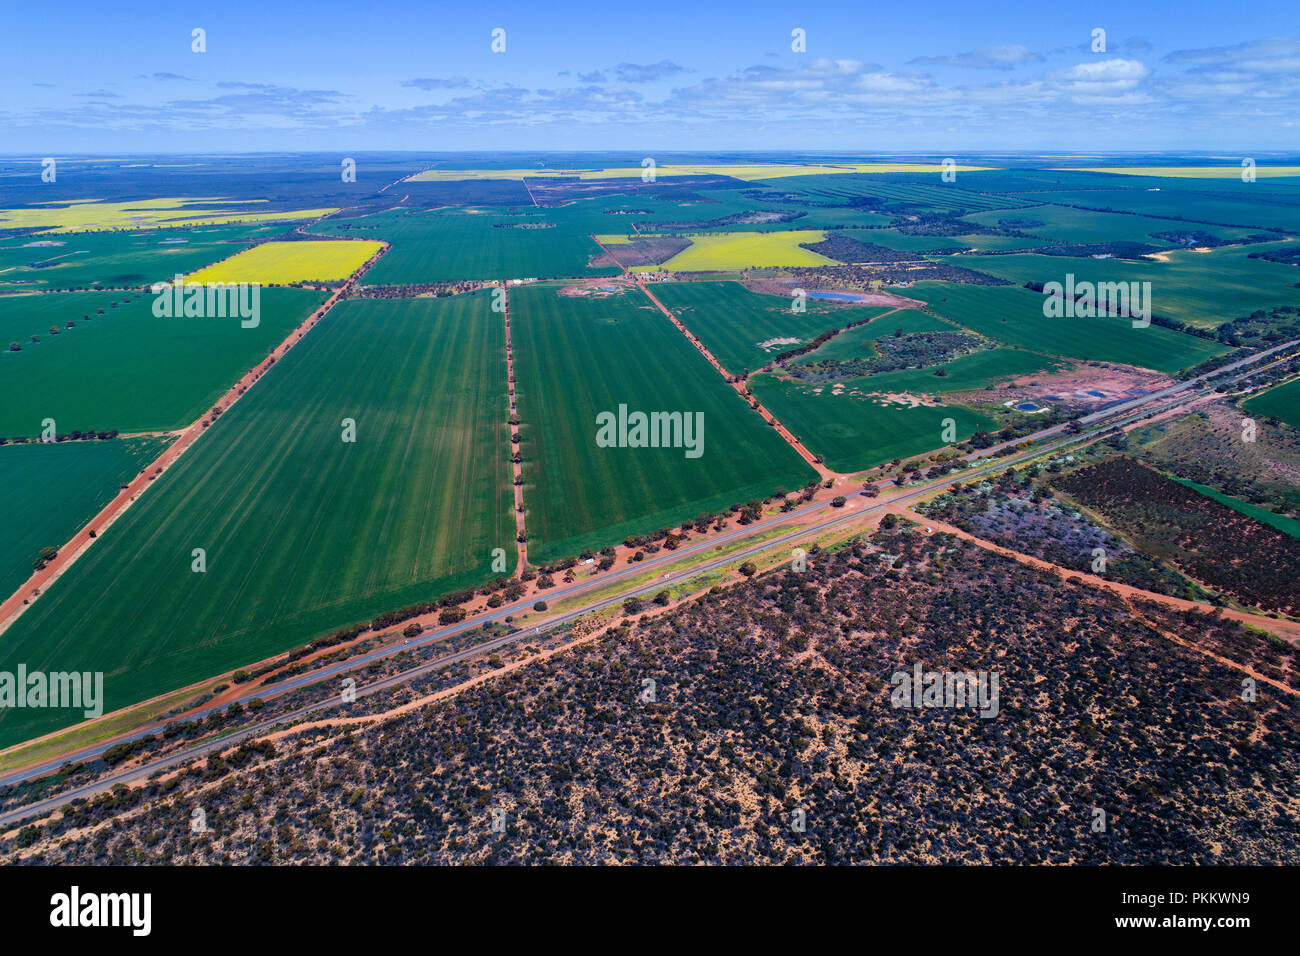 Aerial view of Wheat Crop, Midwest, Western Australia Stock Photo